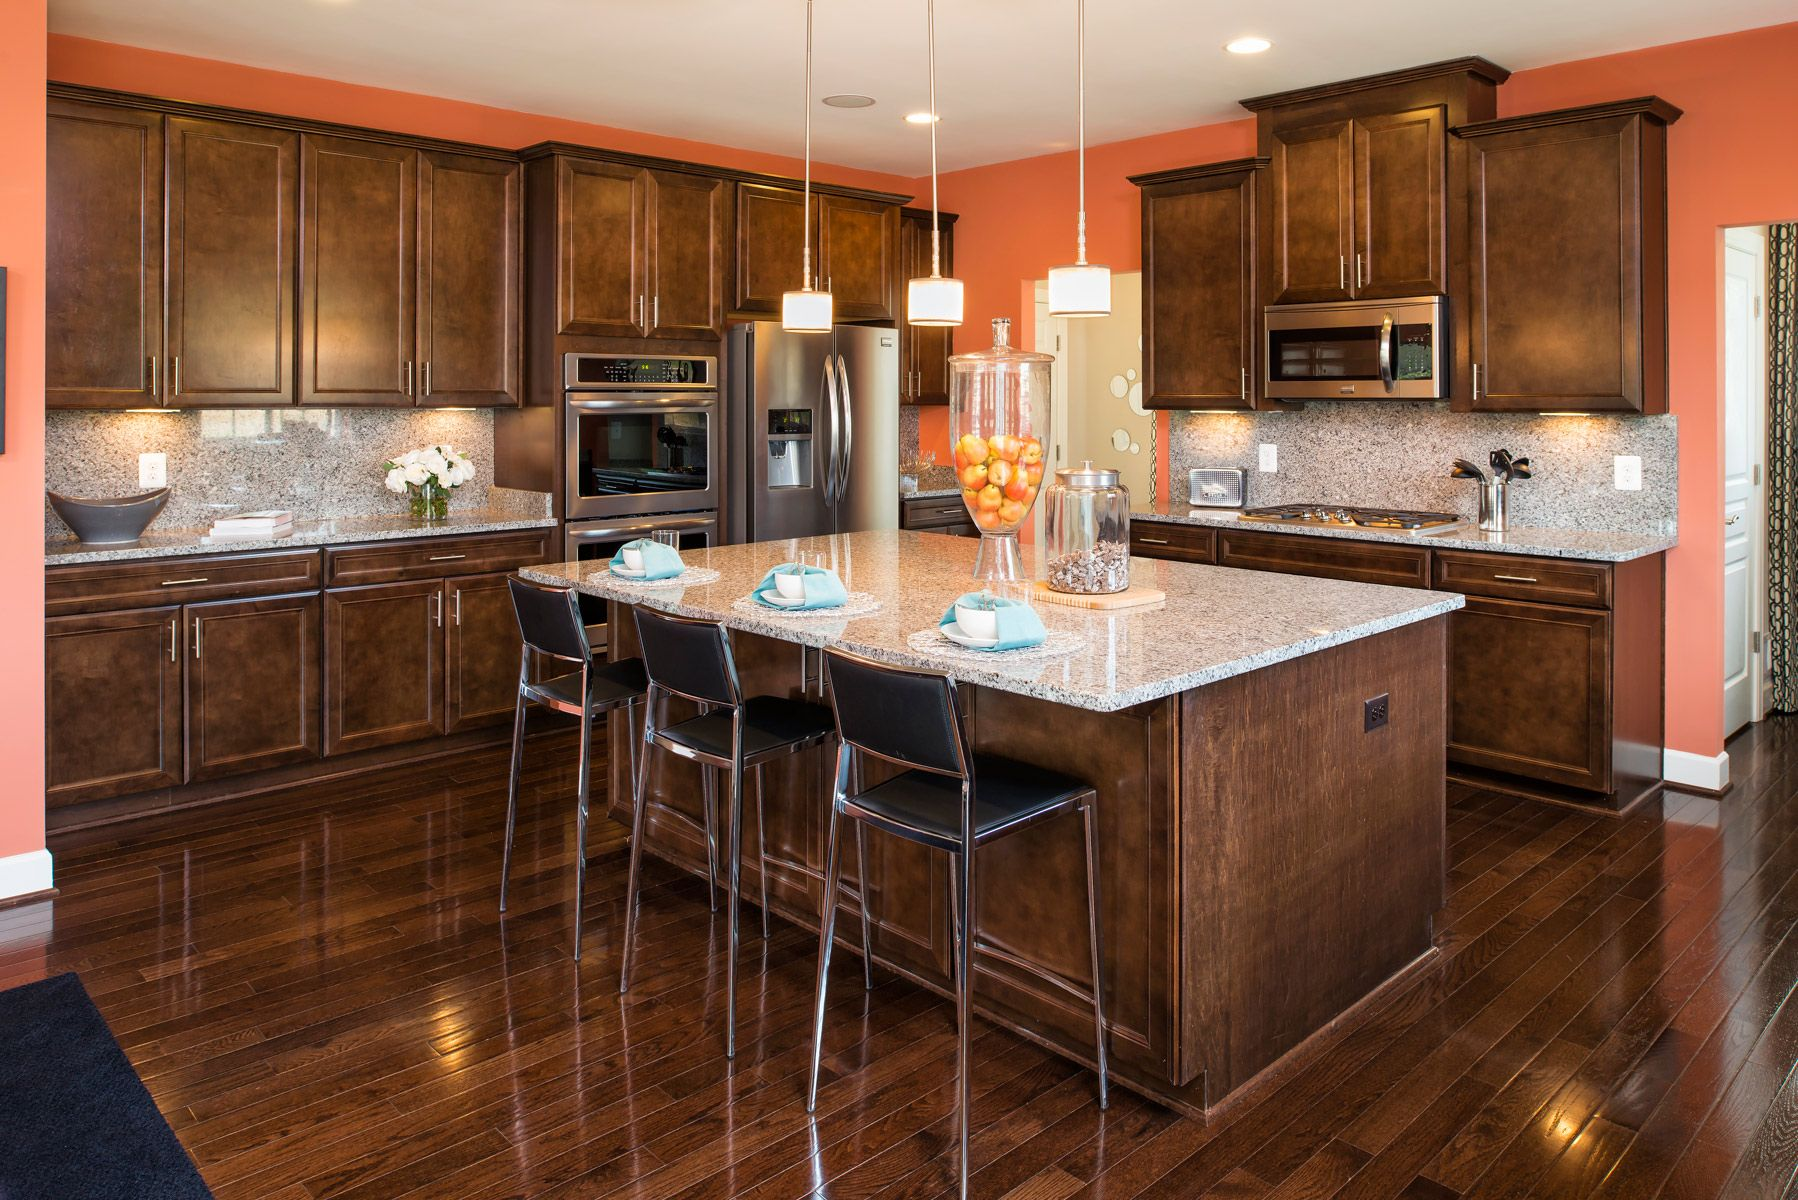 Love The Coral Paint Behind The Dark Cabinets The Chatham At Marlboro Riding Home Kitchens Kitchen Design Coral Kitchen